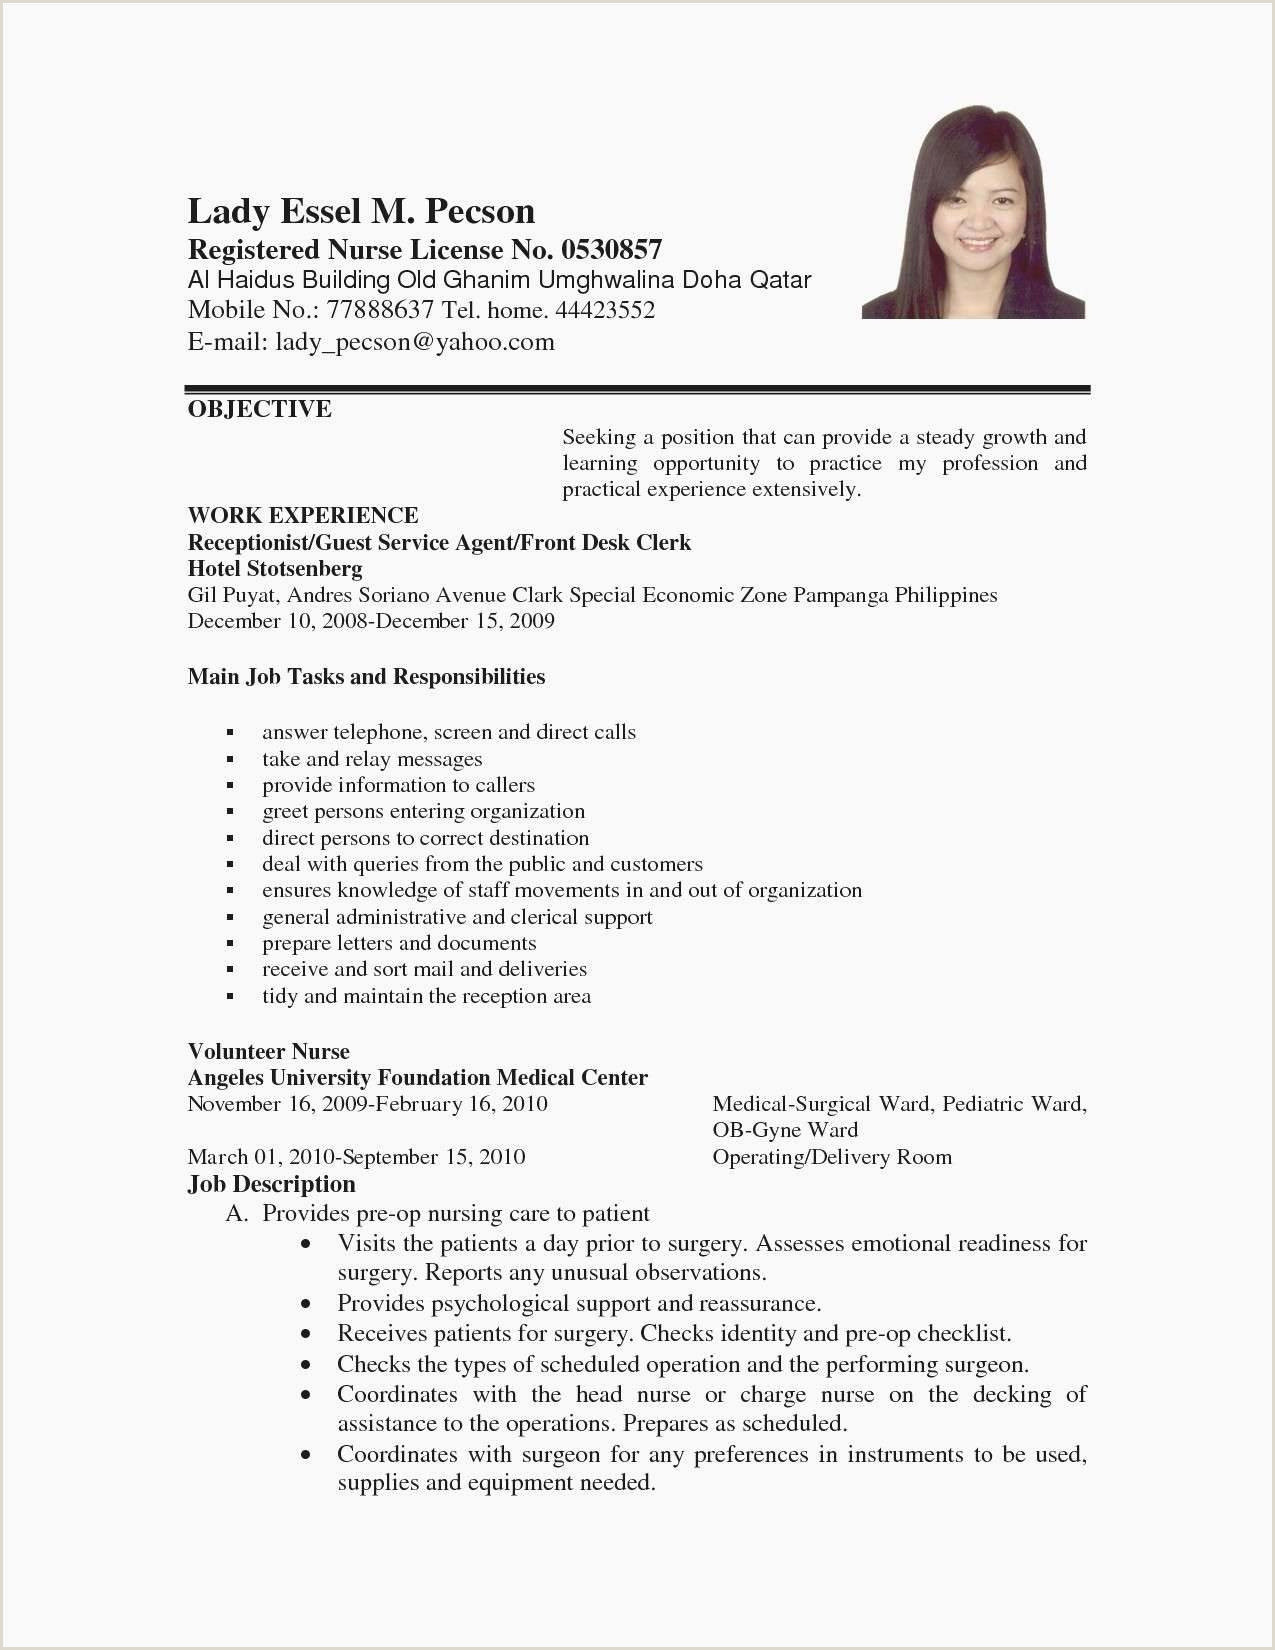 Resume format for Un Jobs Telecharger Cv Gratuit échantillon Creative Cv Templates